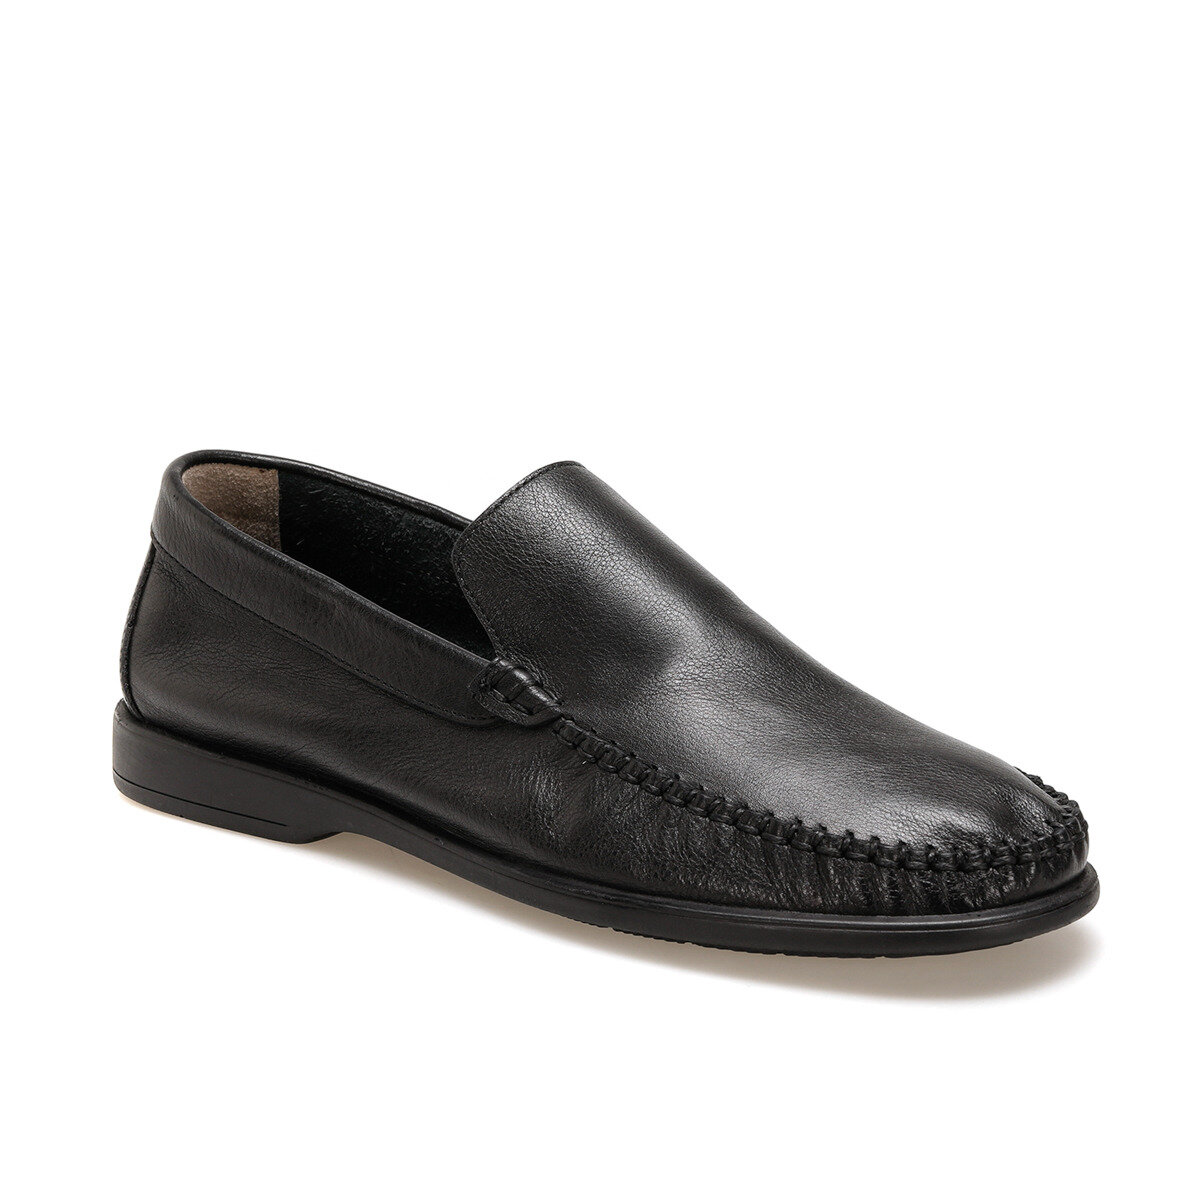 FLO G-170 Black Men 'S Classic Shoes Flogart